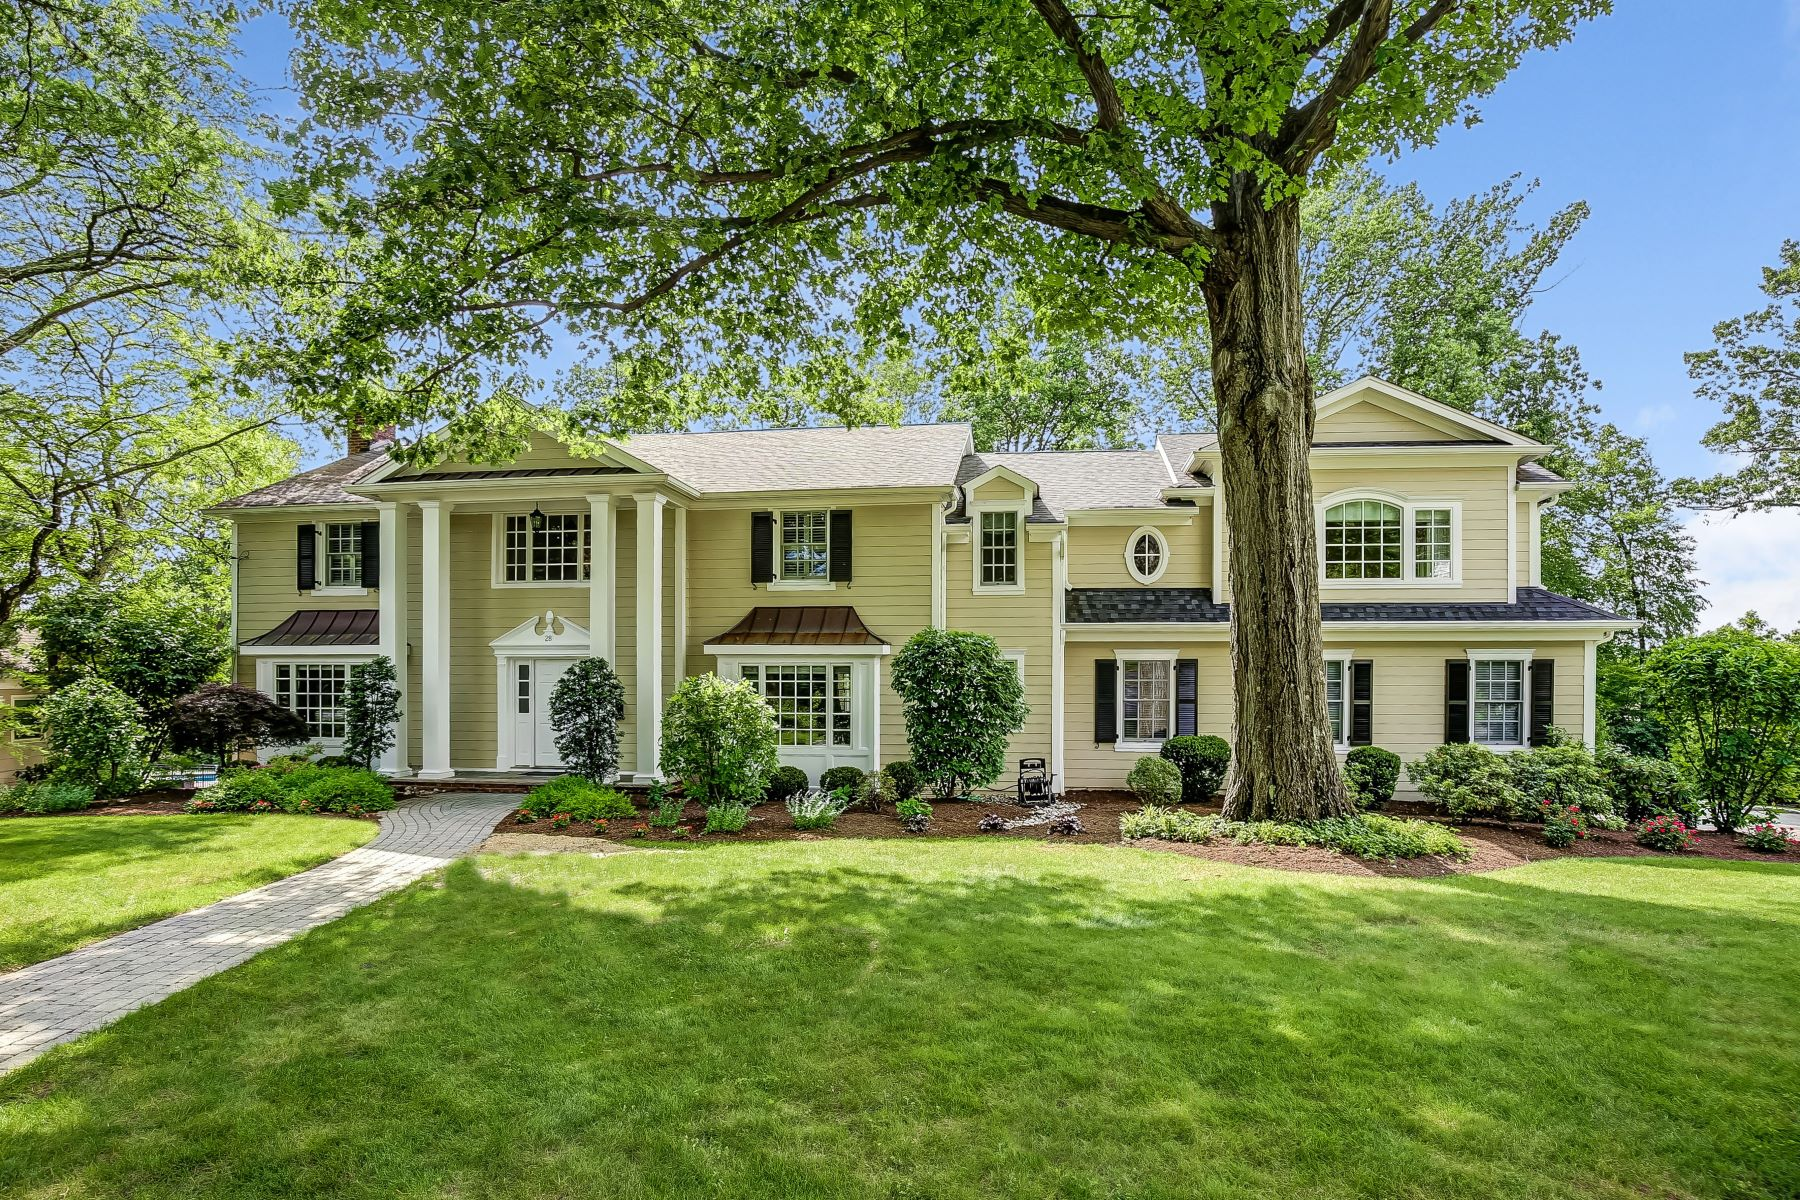 Single Family Home for Sale at Impressive Classic Colonial 28 Farbrook Drive, Short Hills, New Jersey, 07078 United States